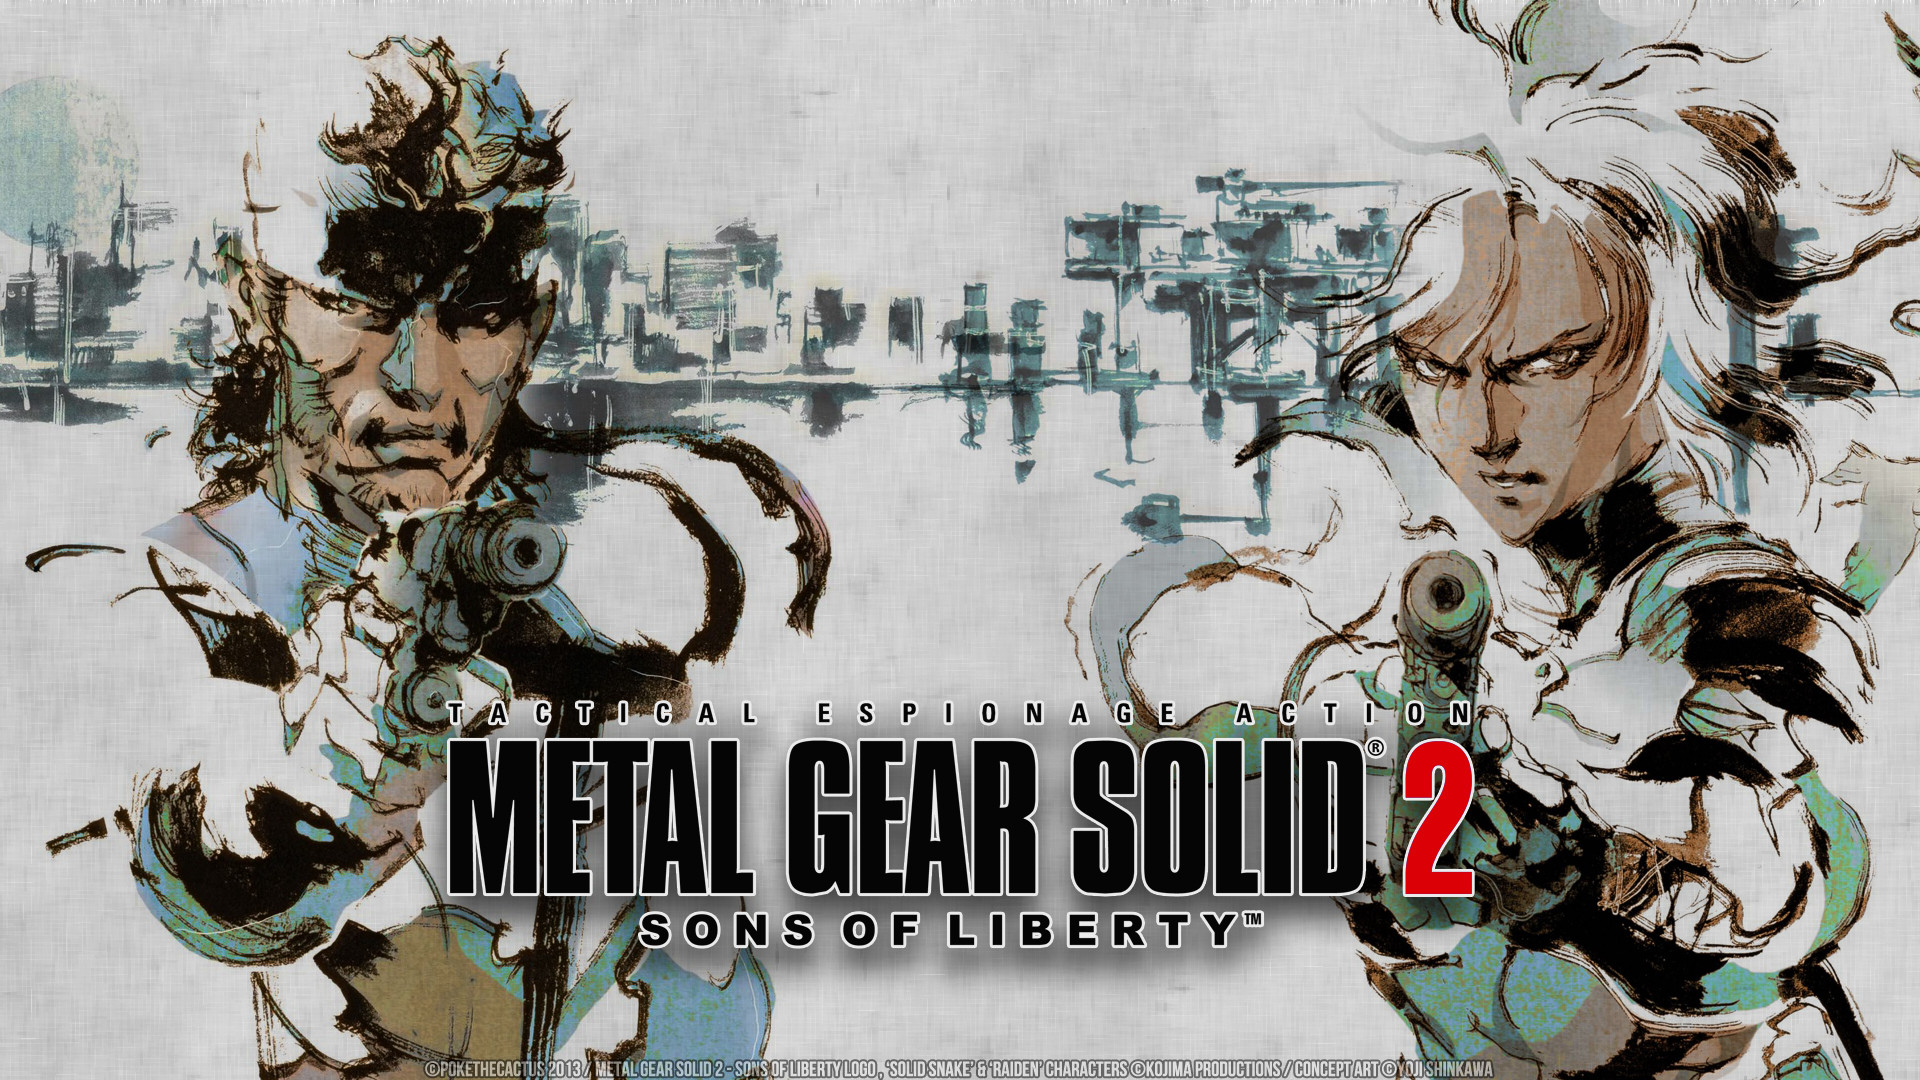 Wallpaper metal gear solid 2 sons of liberty, metal gear solid,  stealth-